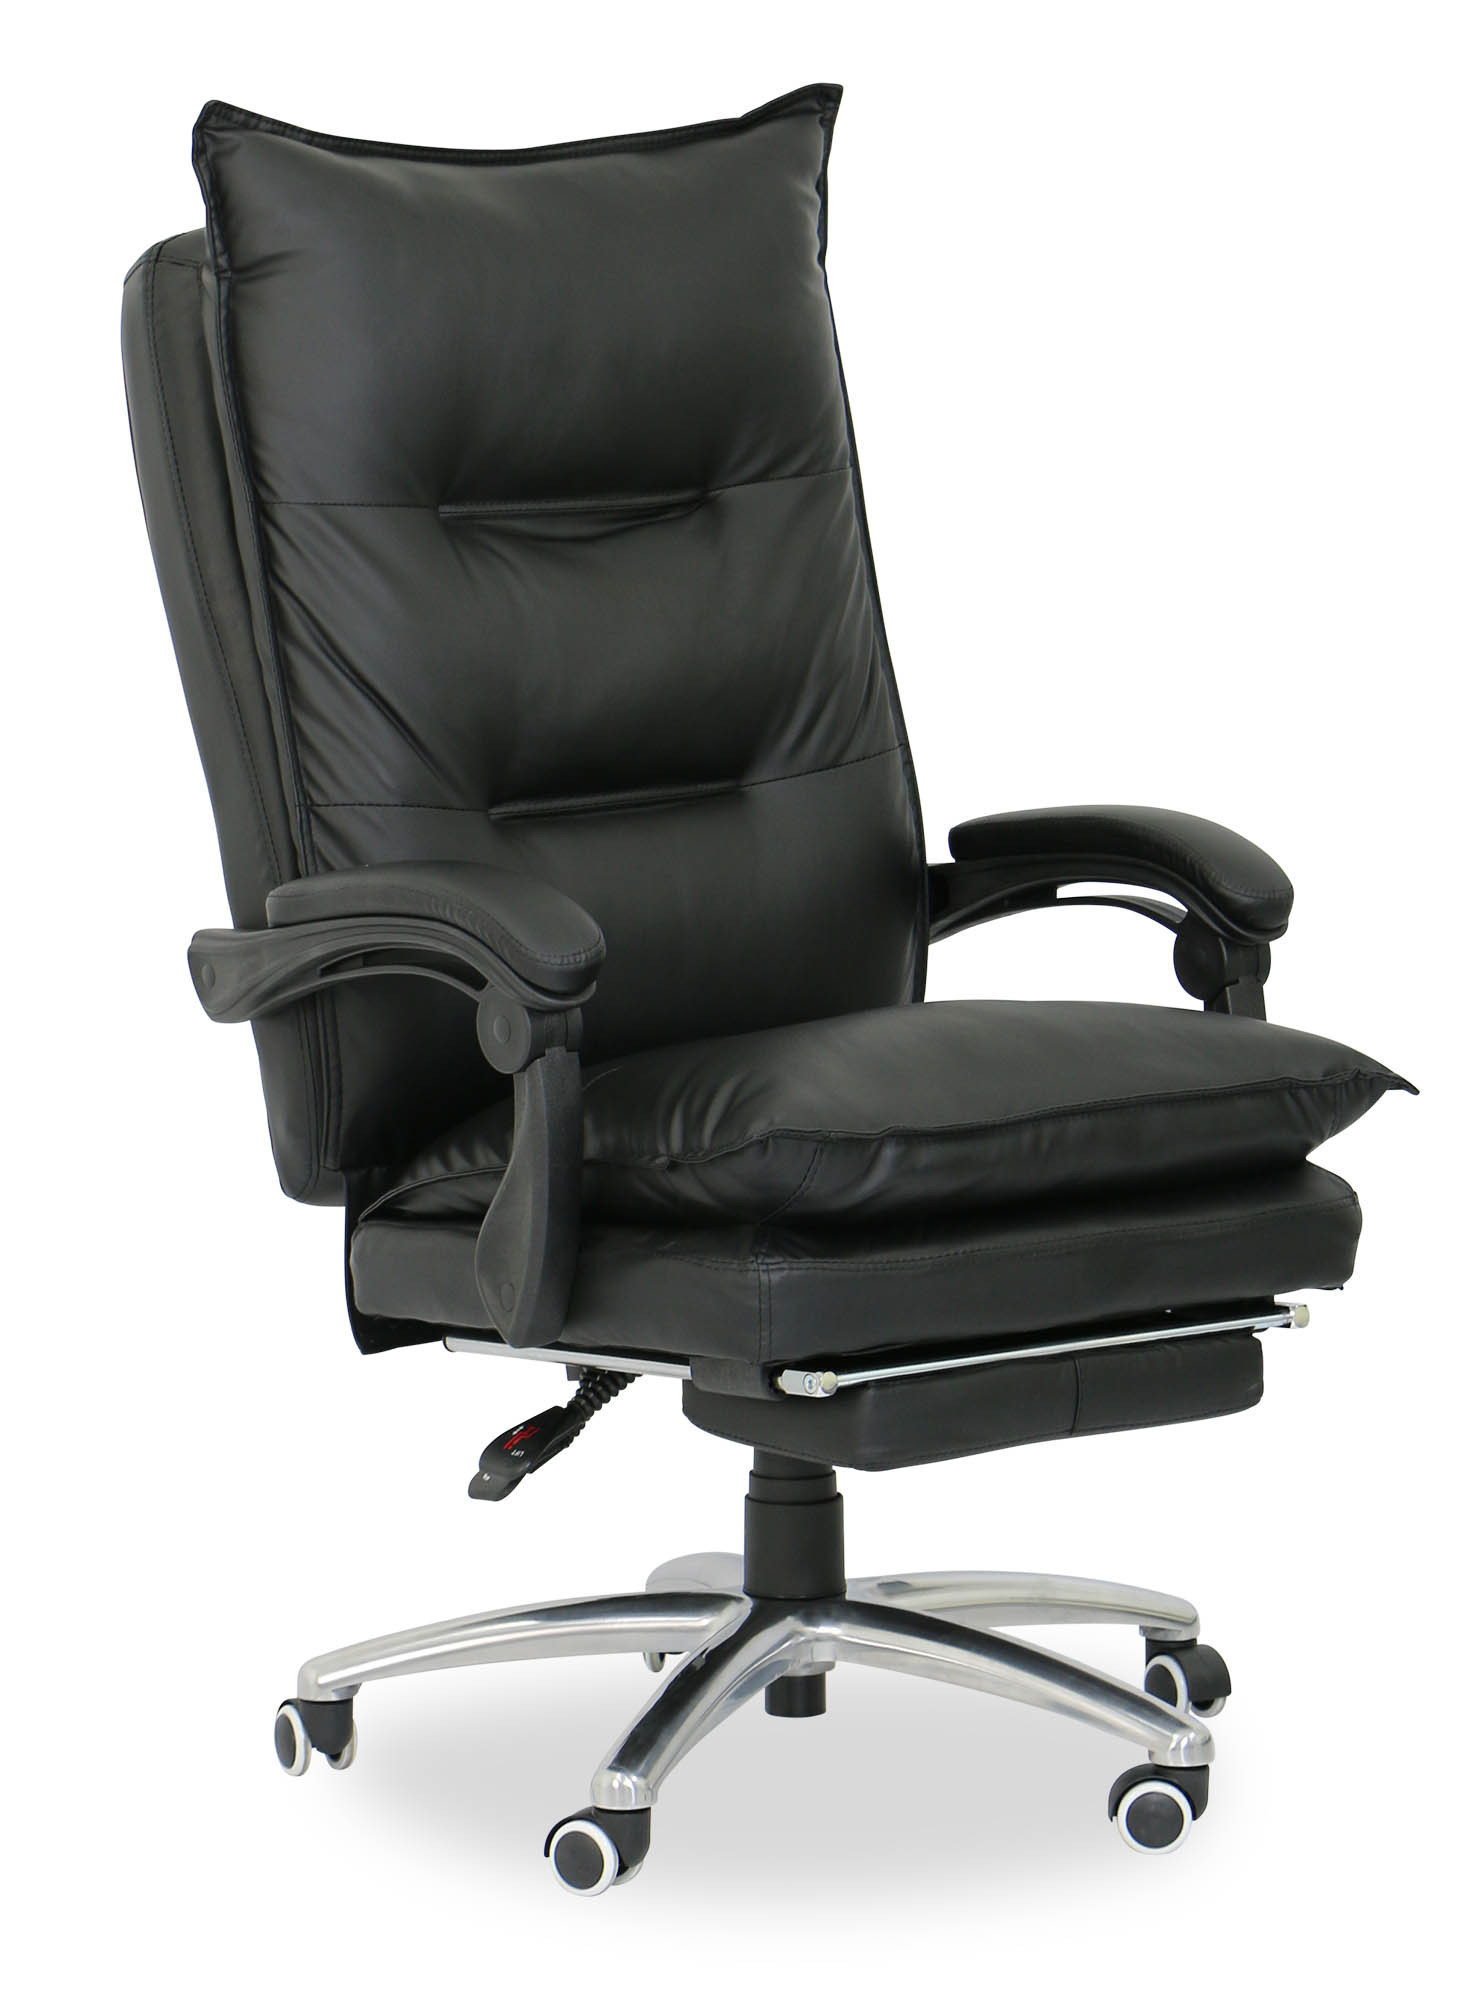 Deluxe Pu Executive Office Chair (Black)